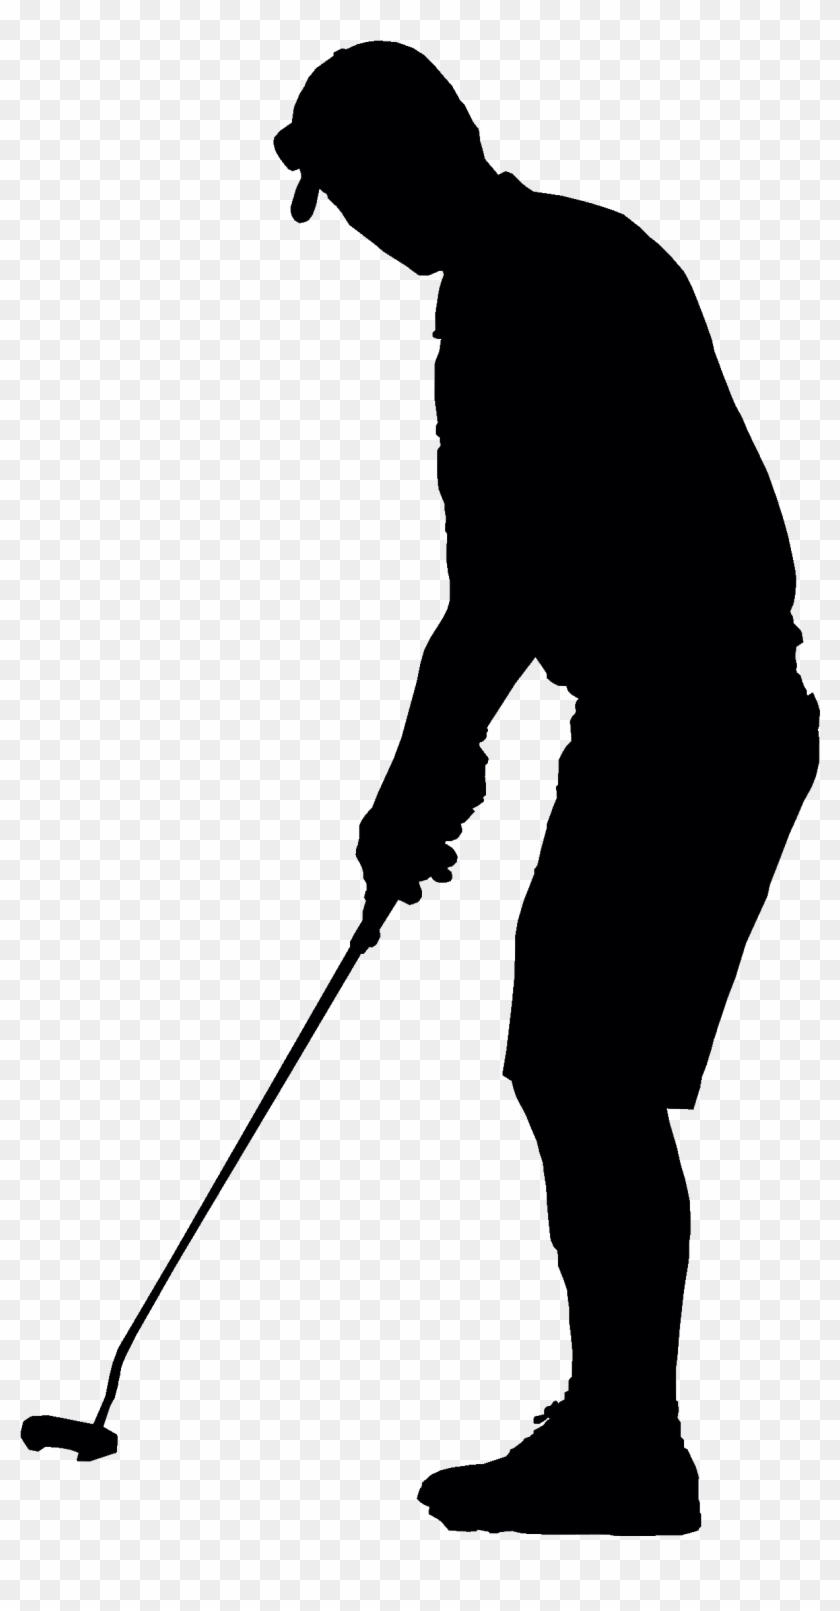 Golfer Free Download Clip Art On Clipart Library - Golfer Free Download Clip Art On Clipart Library #1496